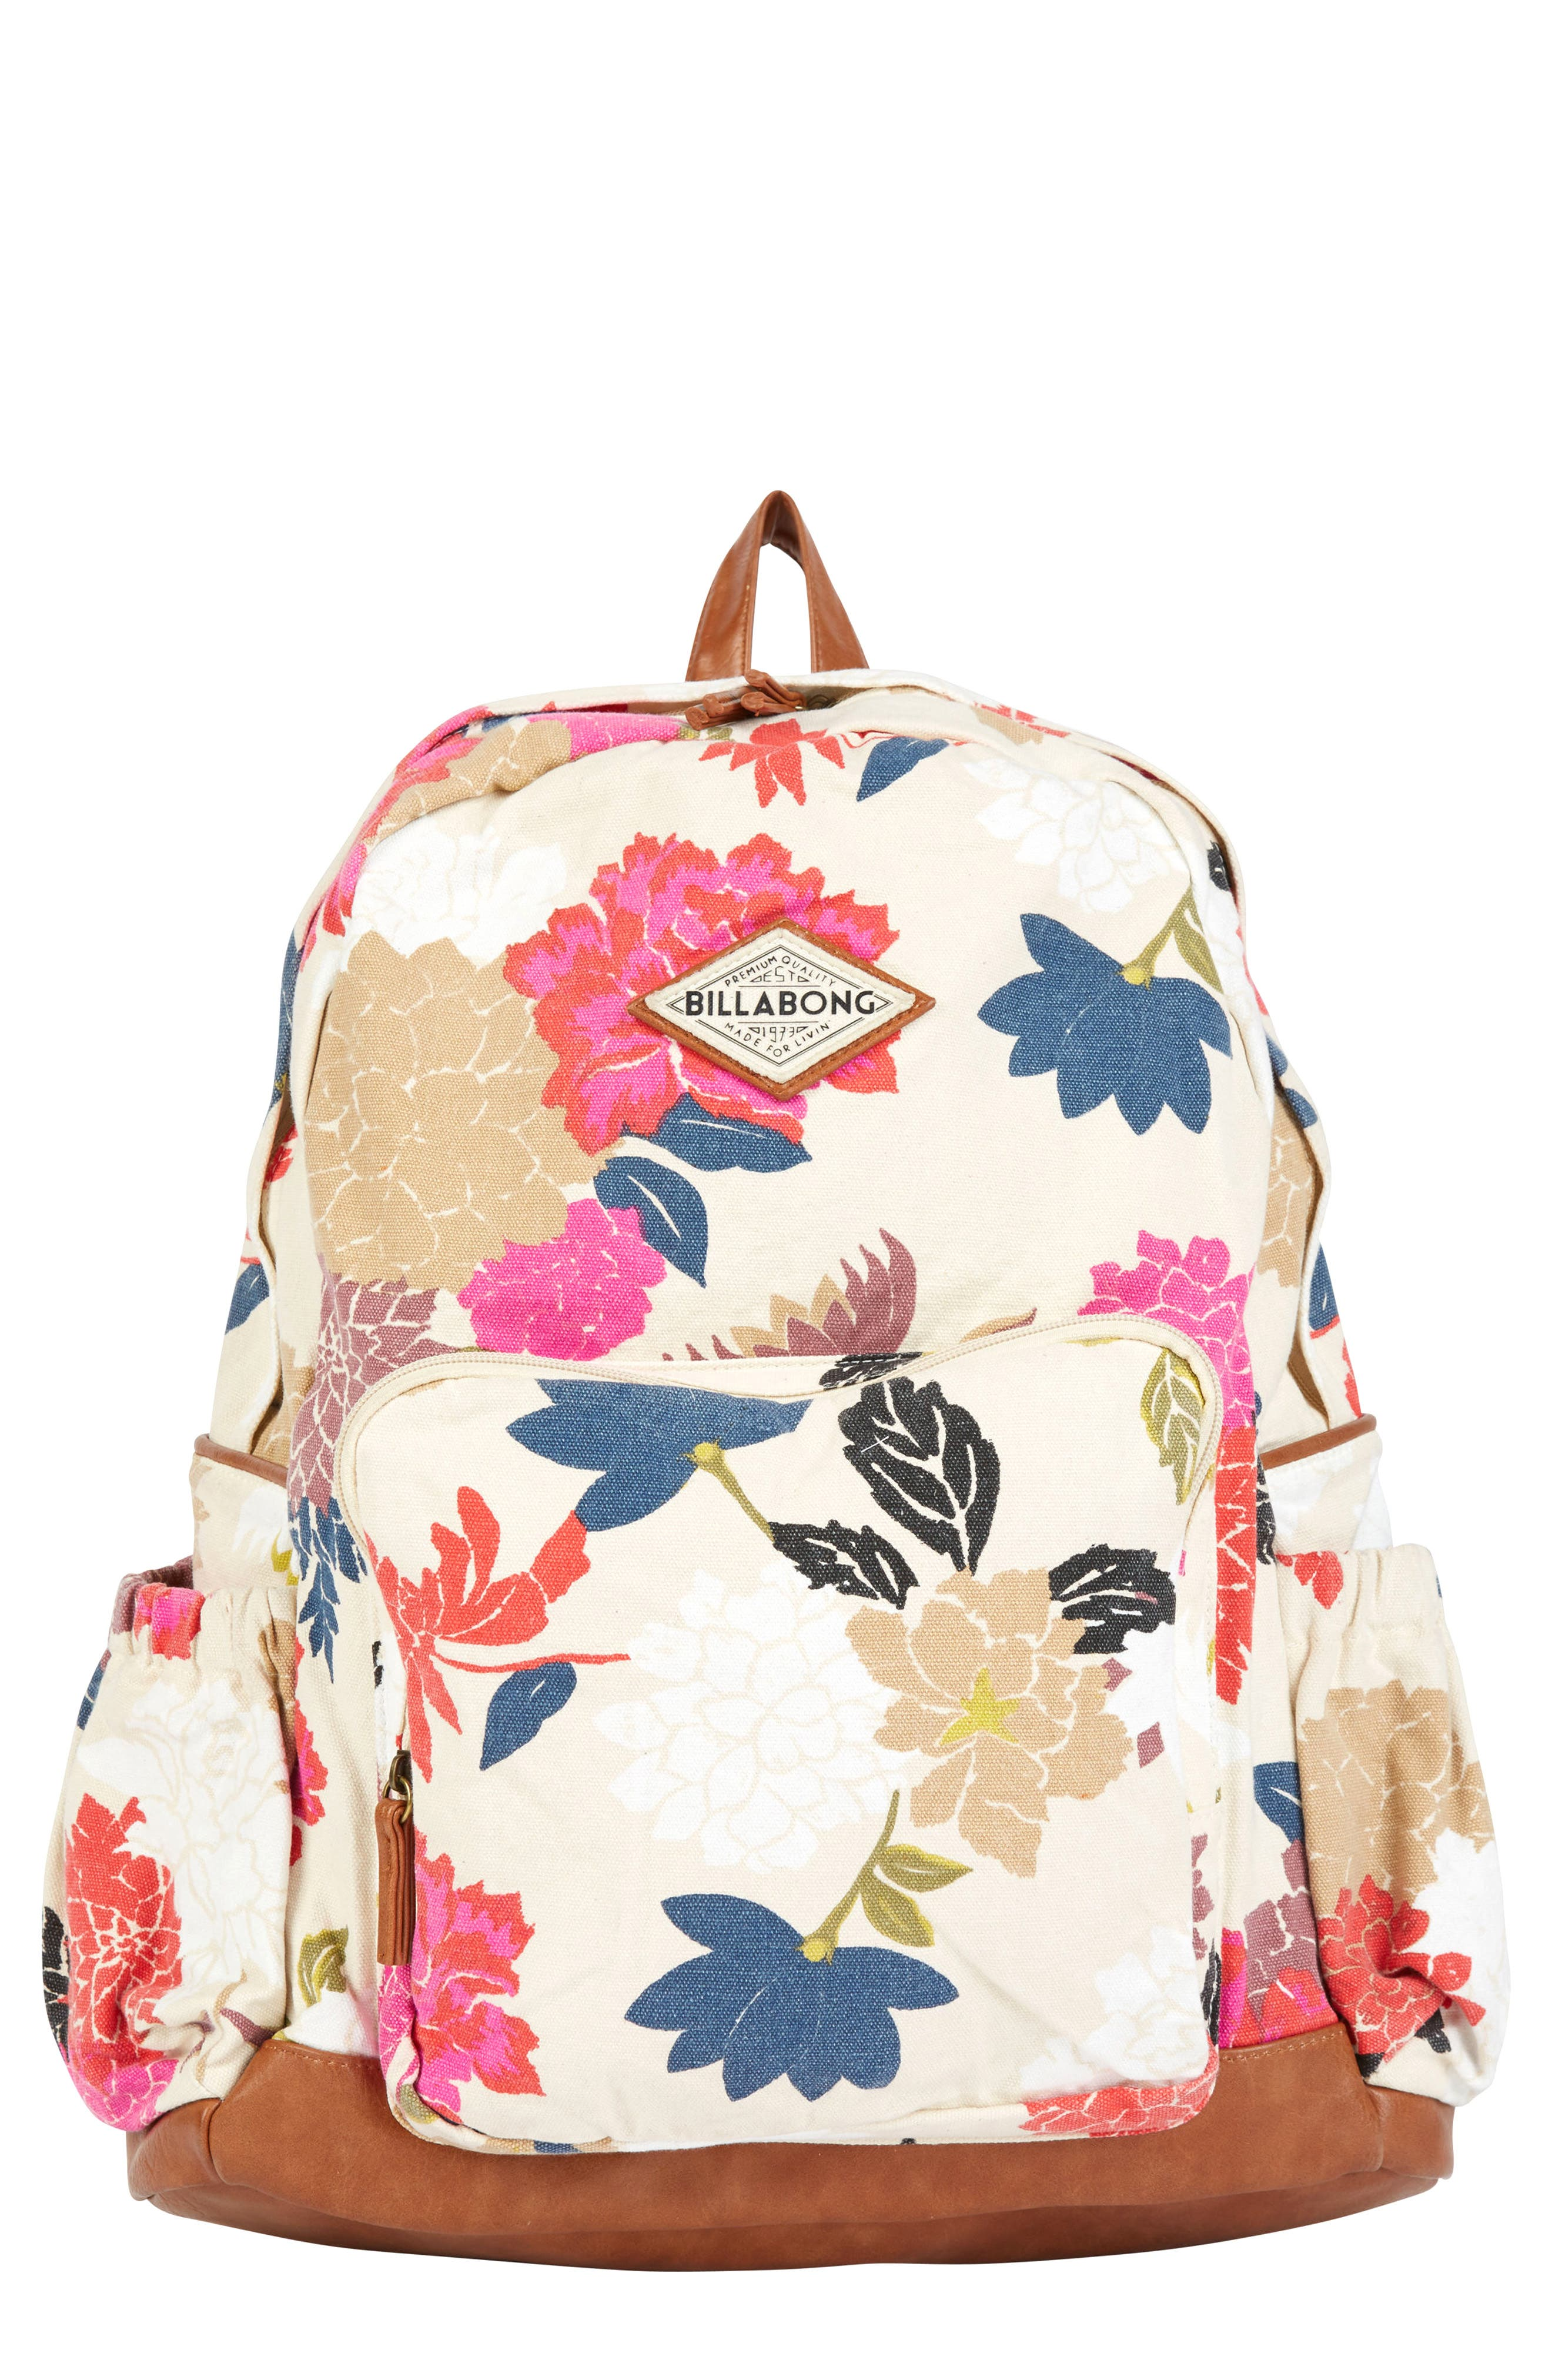 Home Abroad Floral Print Backpack,                         Main,                         color, Cream